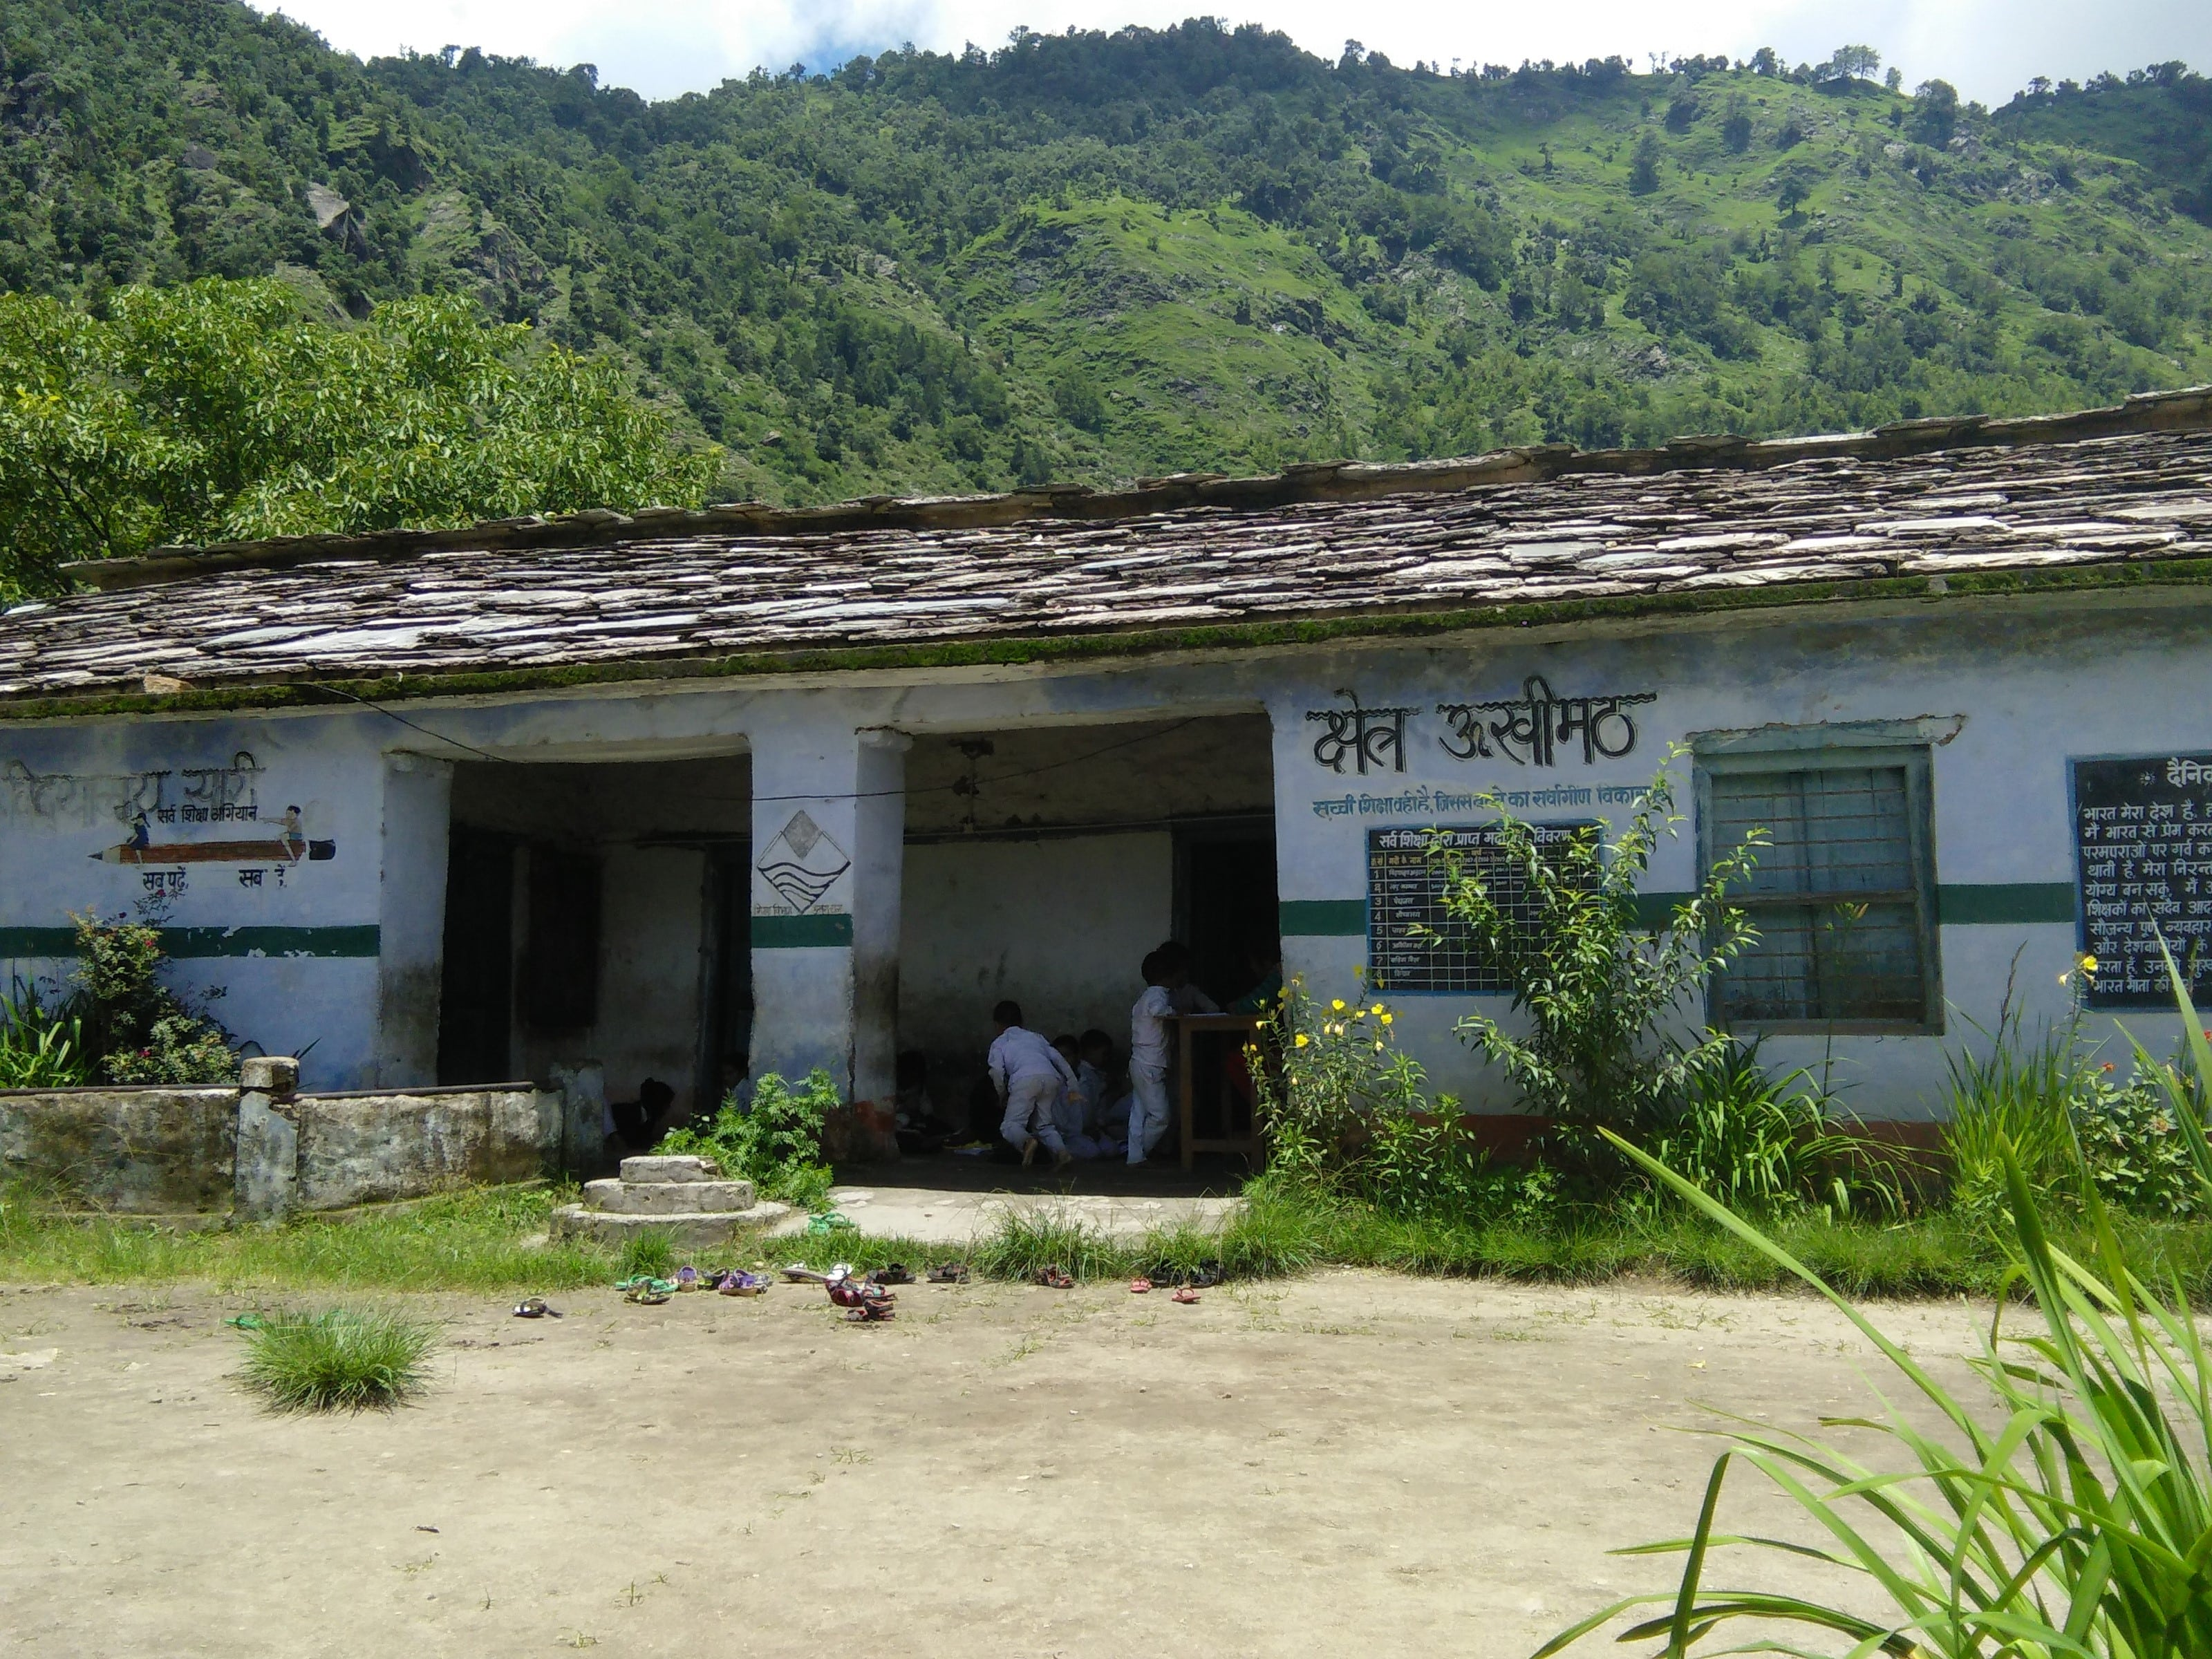 Bring a smile to the children of Sari village, Uttarakhand